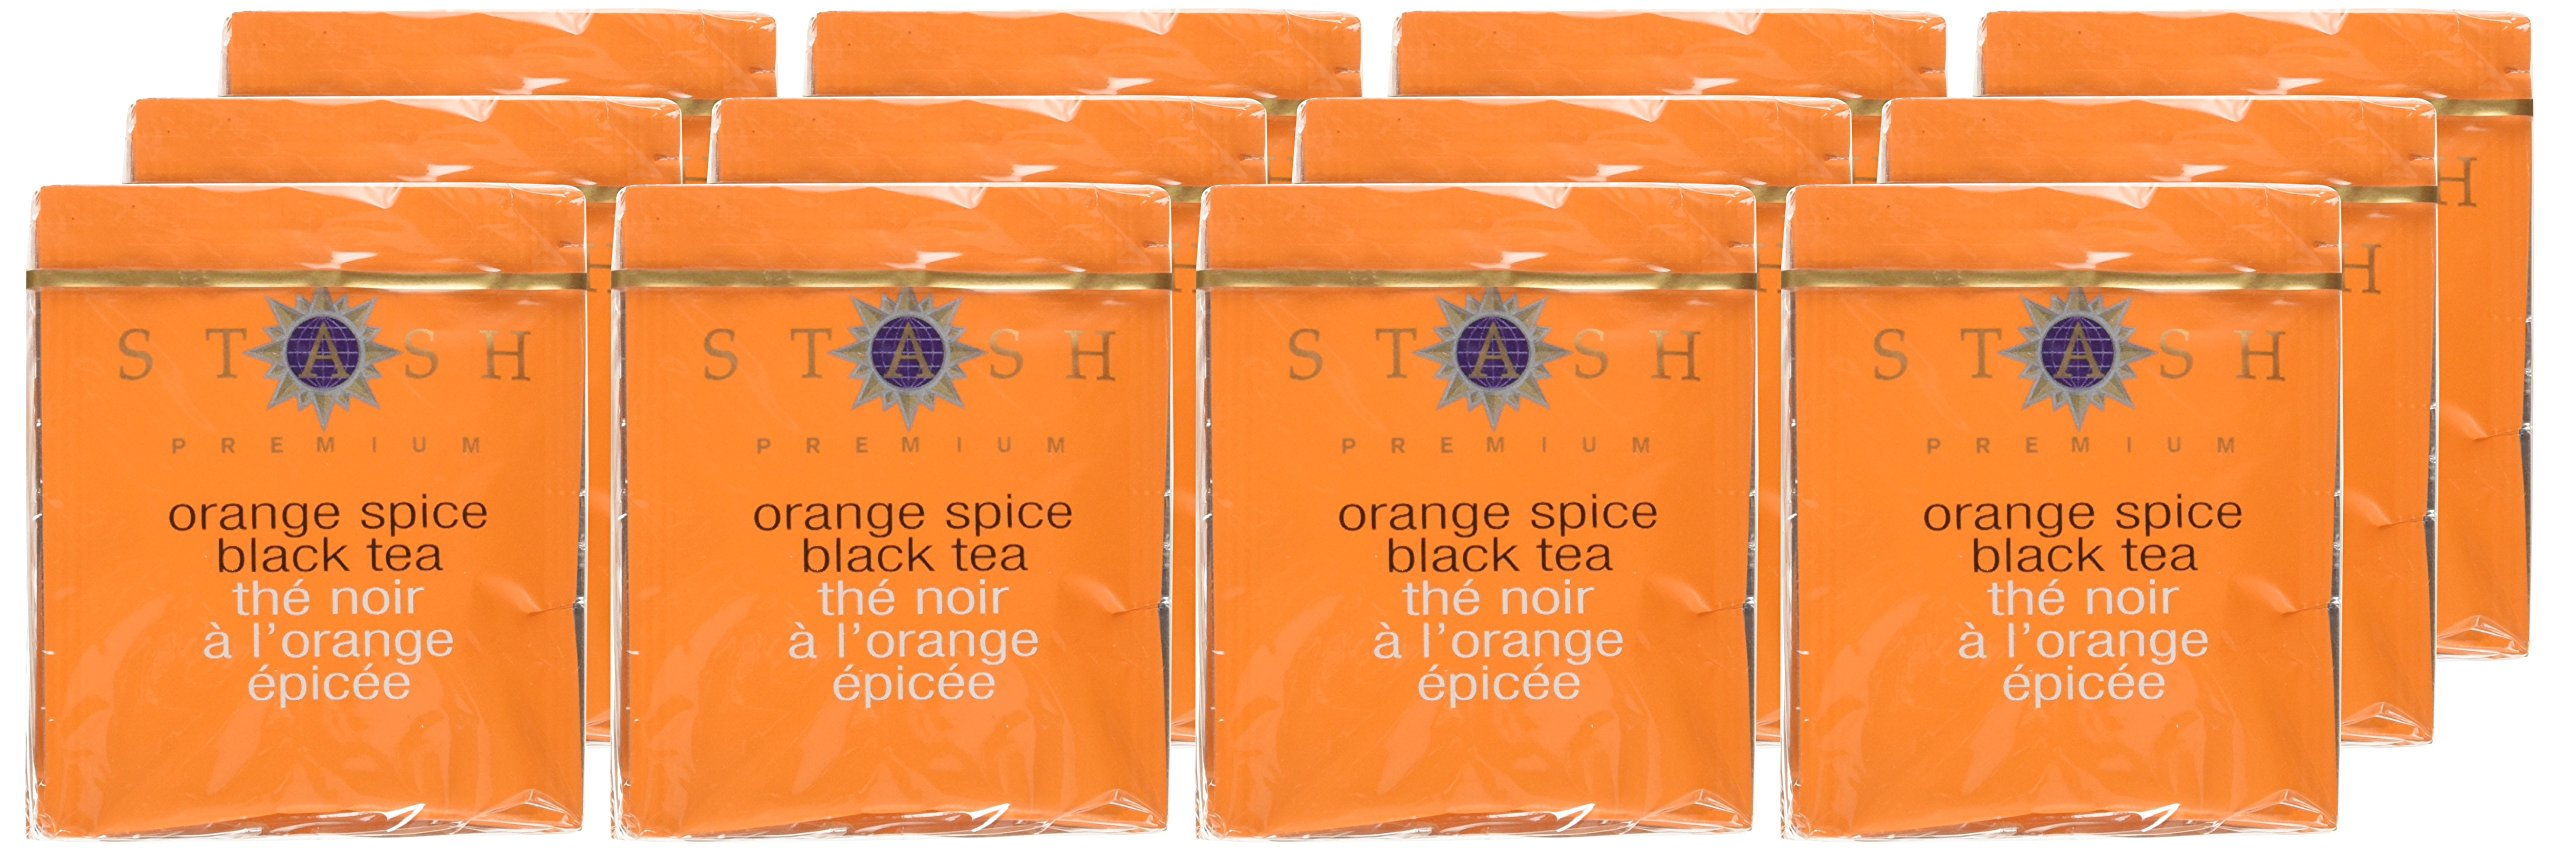 Stash Tea Orange Spice Black Tea 10 Count Tea Bags in Foil (Pack of 12) (packaging may vary) Individual Black Tea Bags for Use in Teapots Mugs or Cups, Brew Hot Tea or Iced Tea by Stash Tea (Image #2)